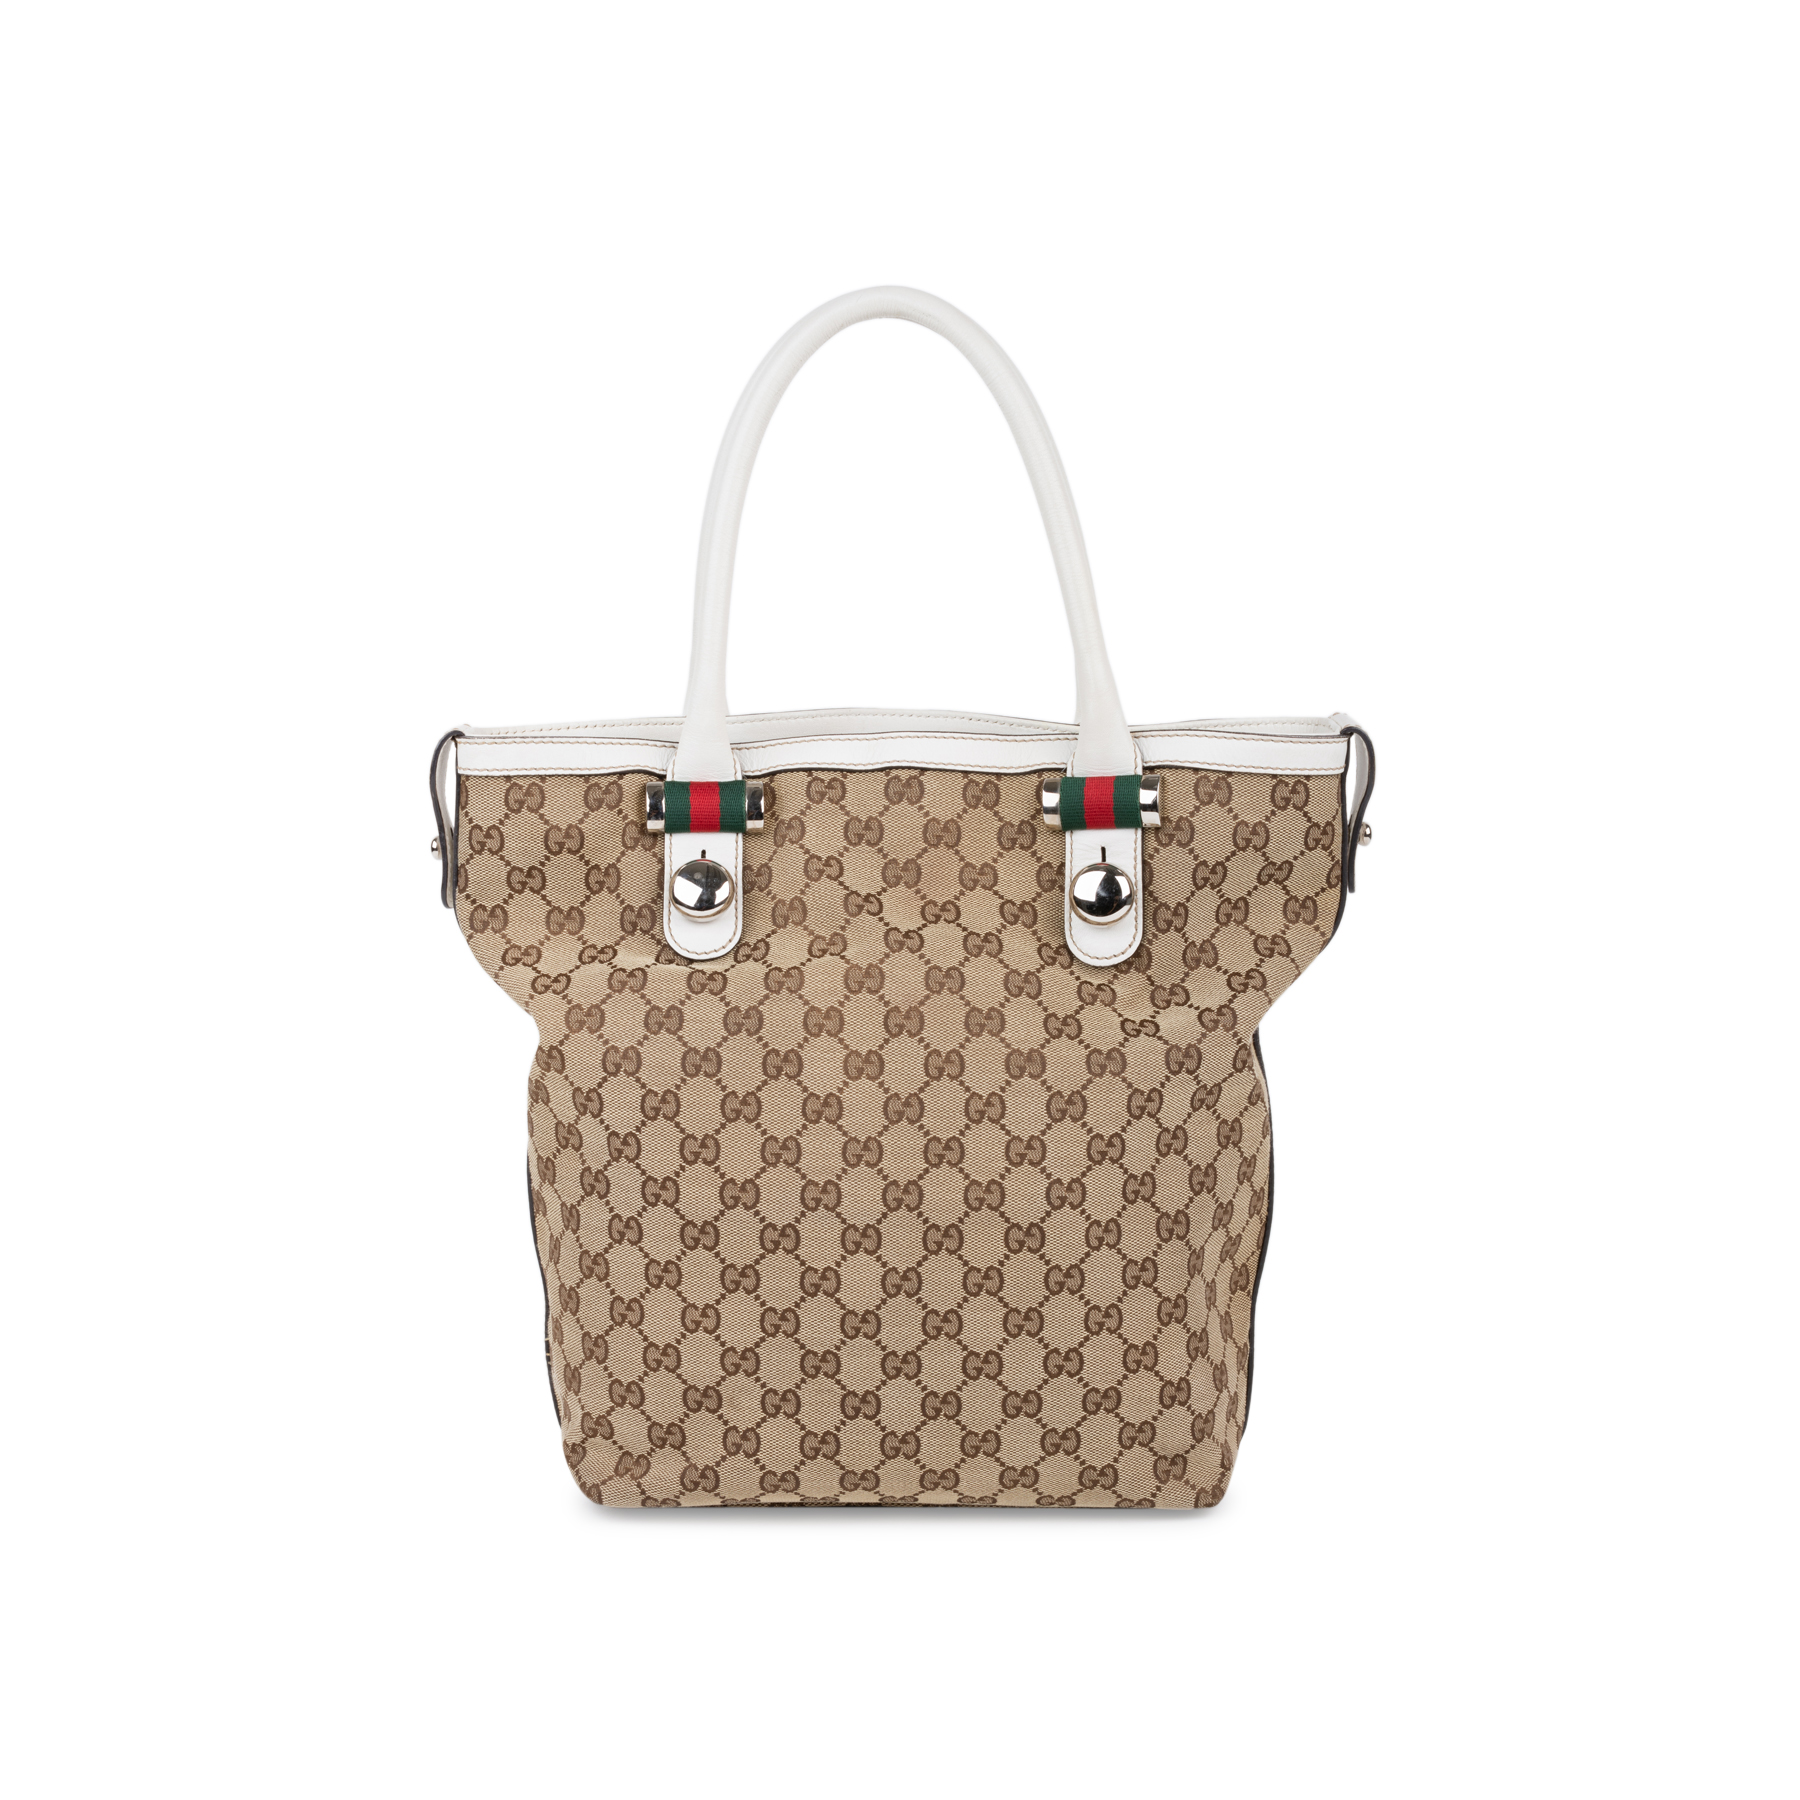 443843c05e7 Authentic Second Hand Gucci Vertical Monogram Tote (PSS-581-00003) - THE  FIFTH COLLECTION